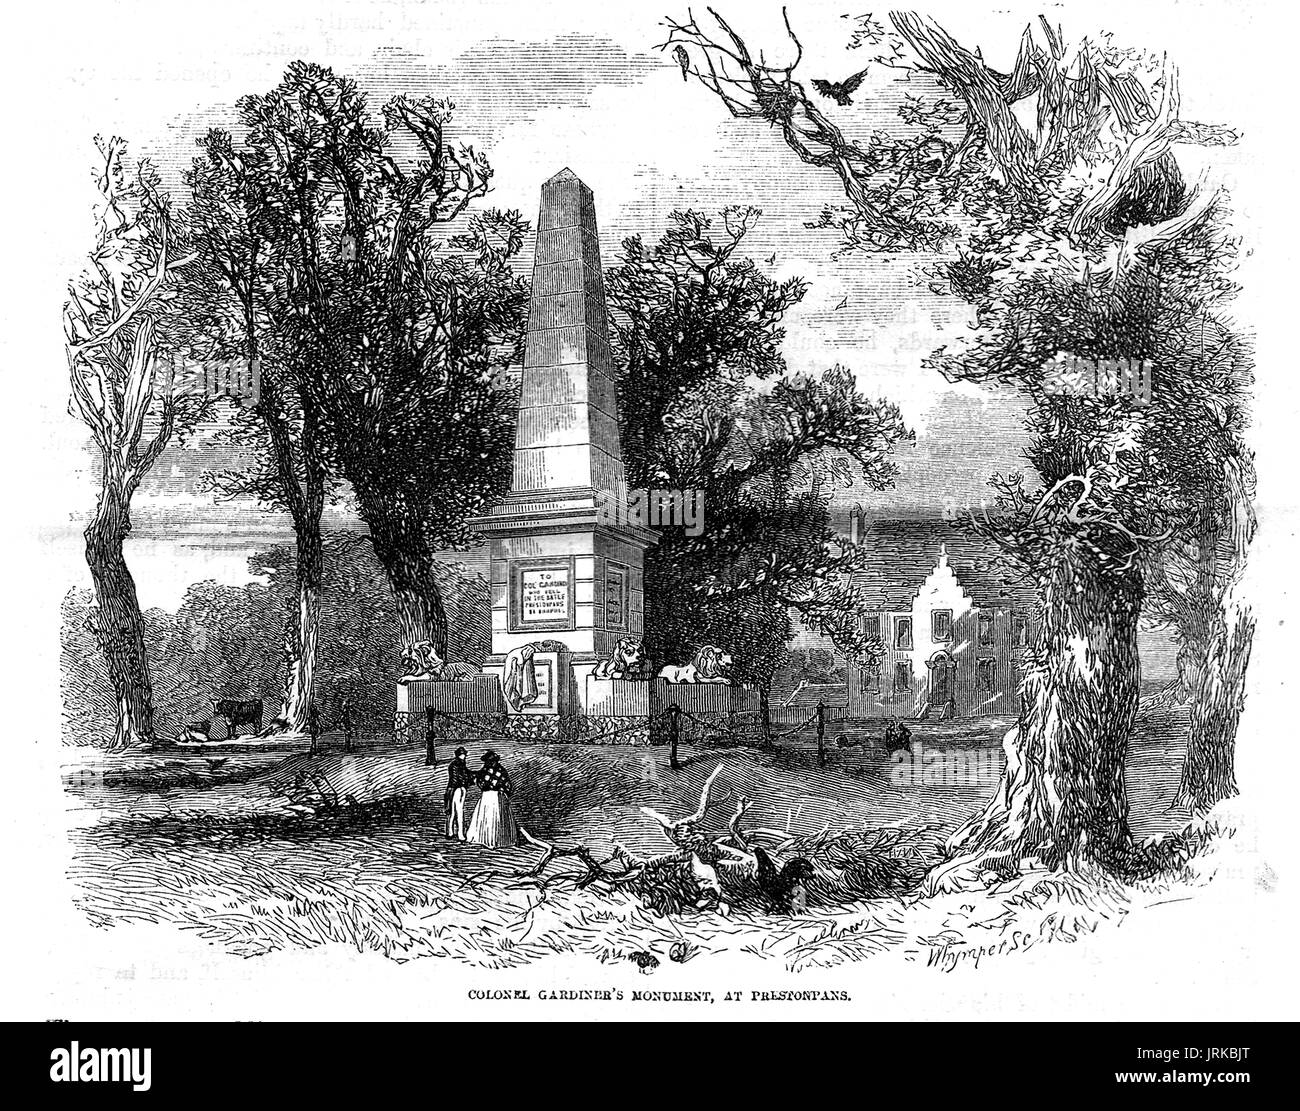 1853 engraving of Colonel Gardiner's Monument at  Bankton House, Preston Pans, East Lothian, Scotland. Stock Photo